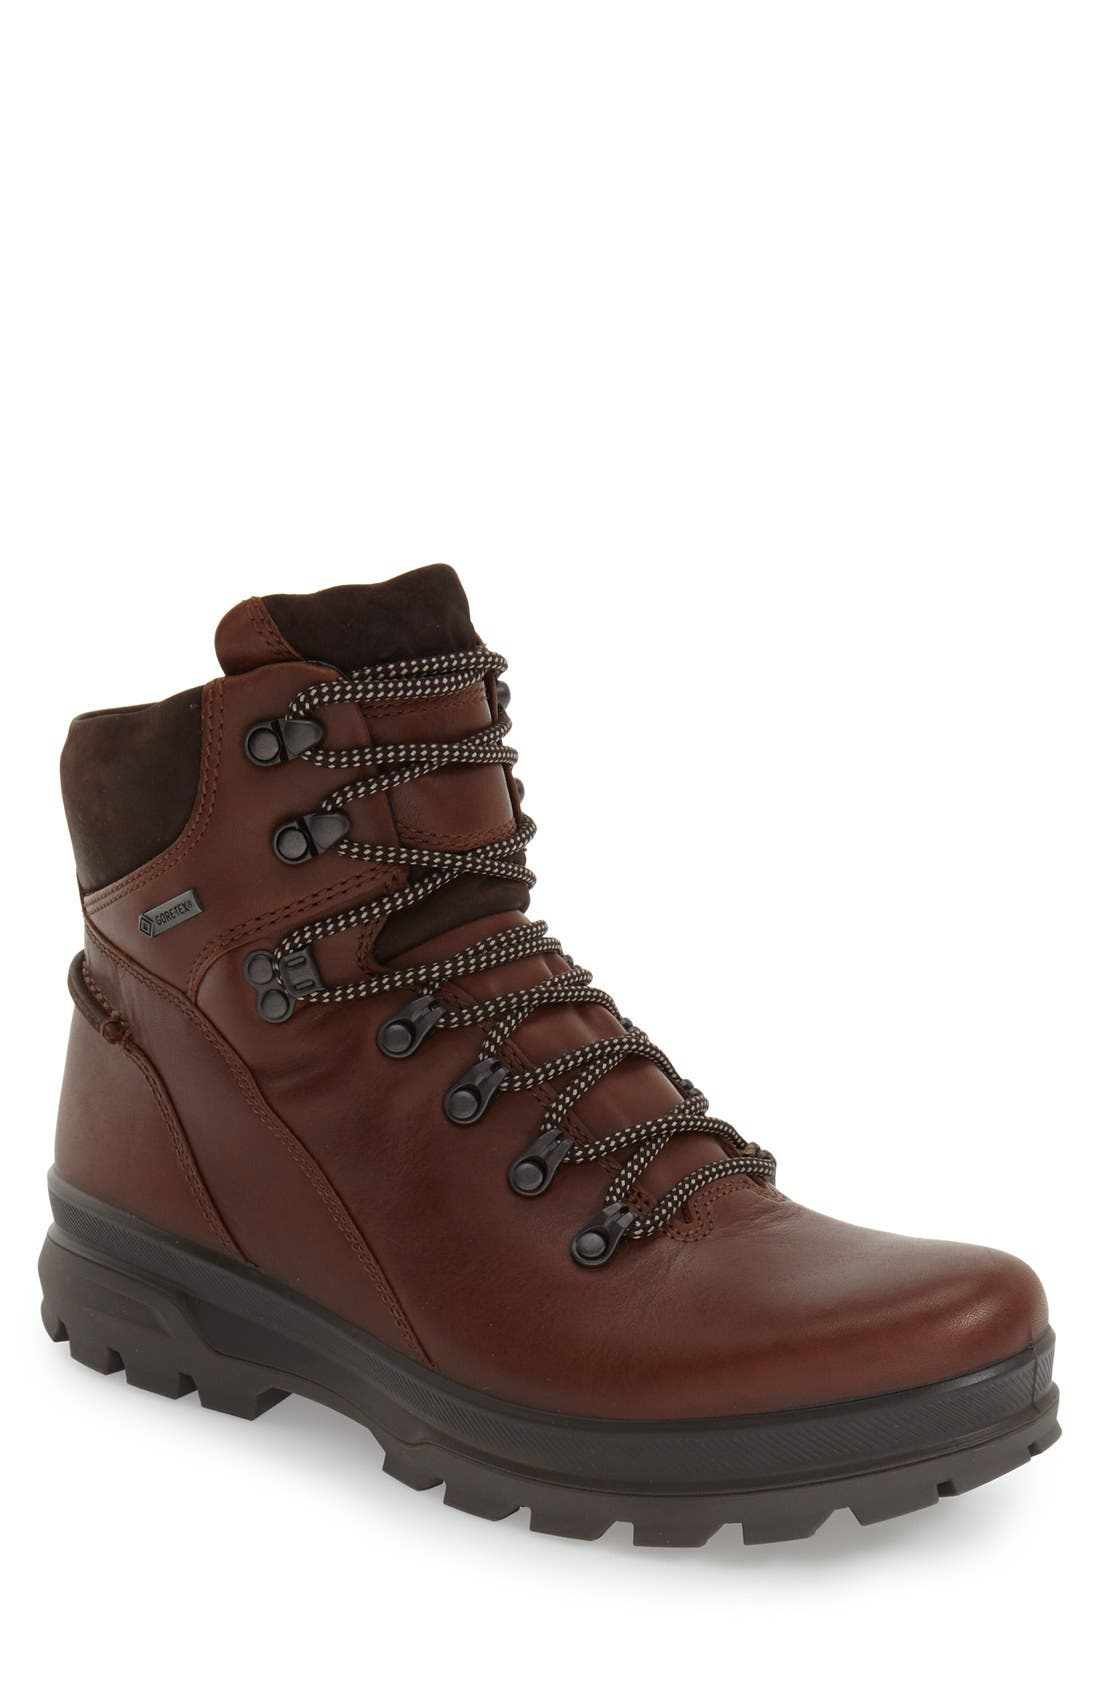 Main Image - ECCO 'Rugged Track GTX' Hiking Boot (Men)